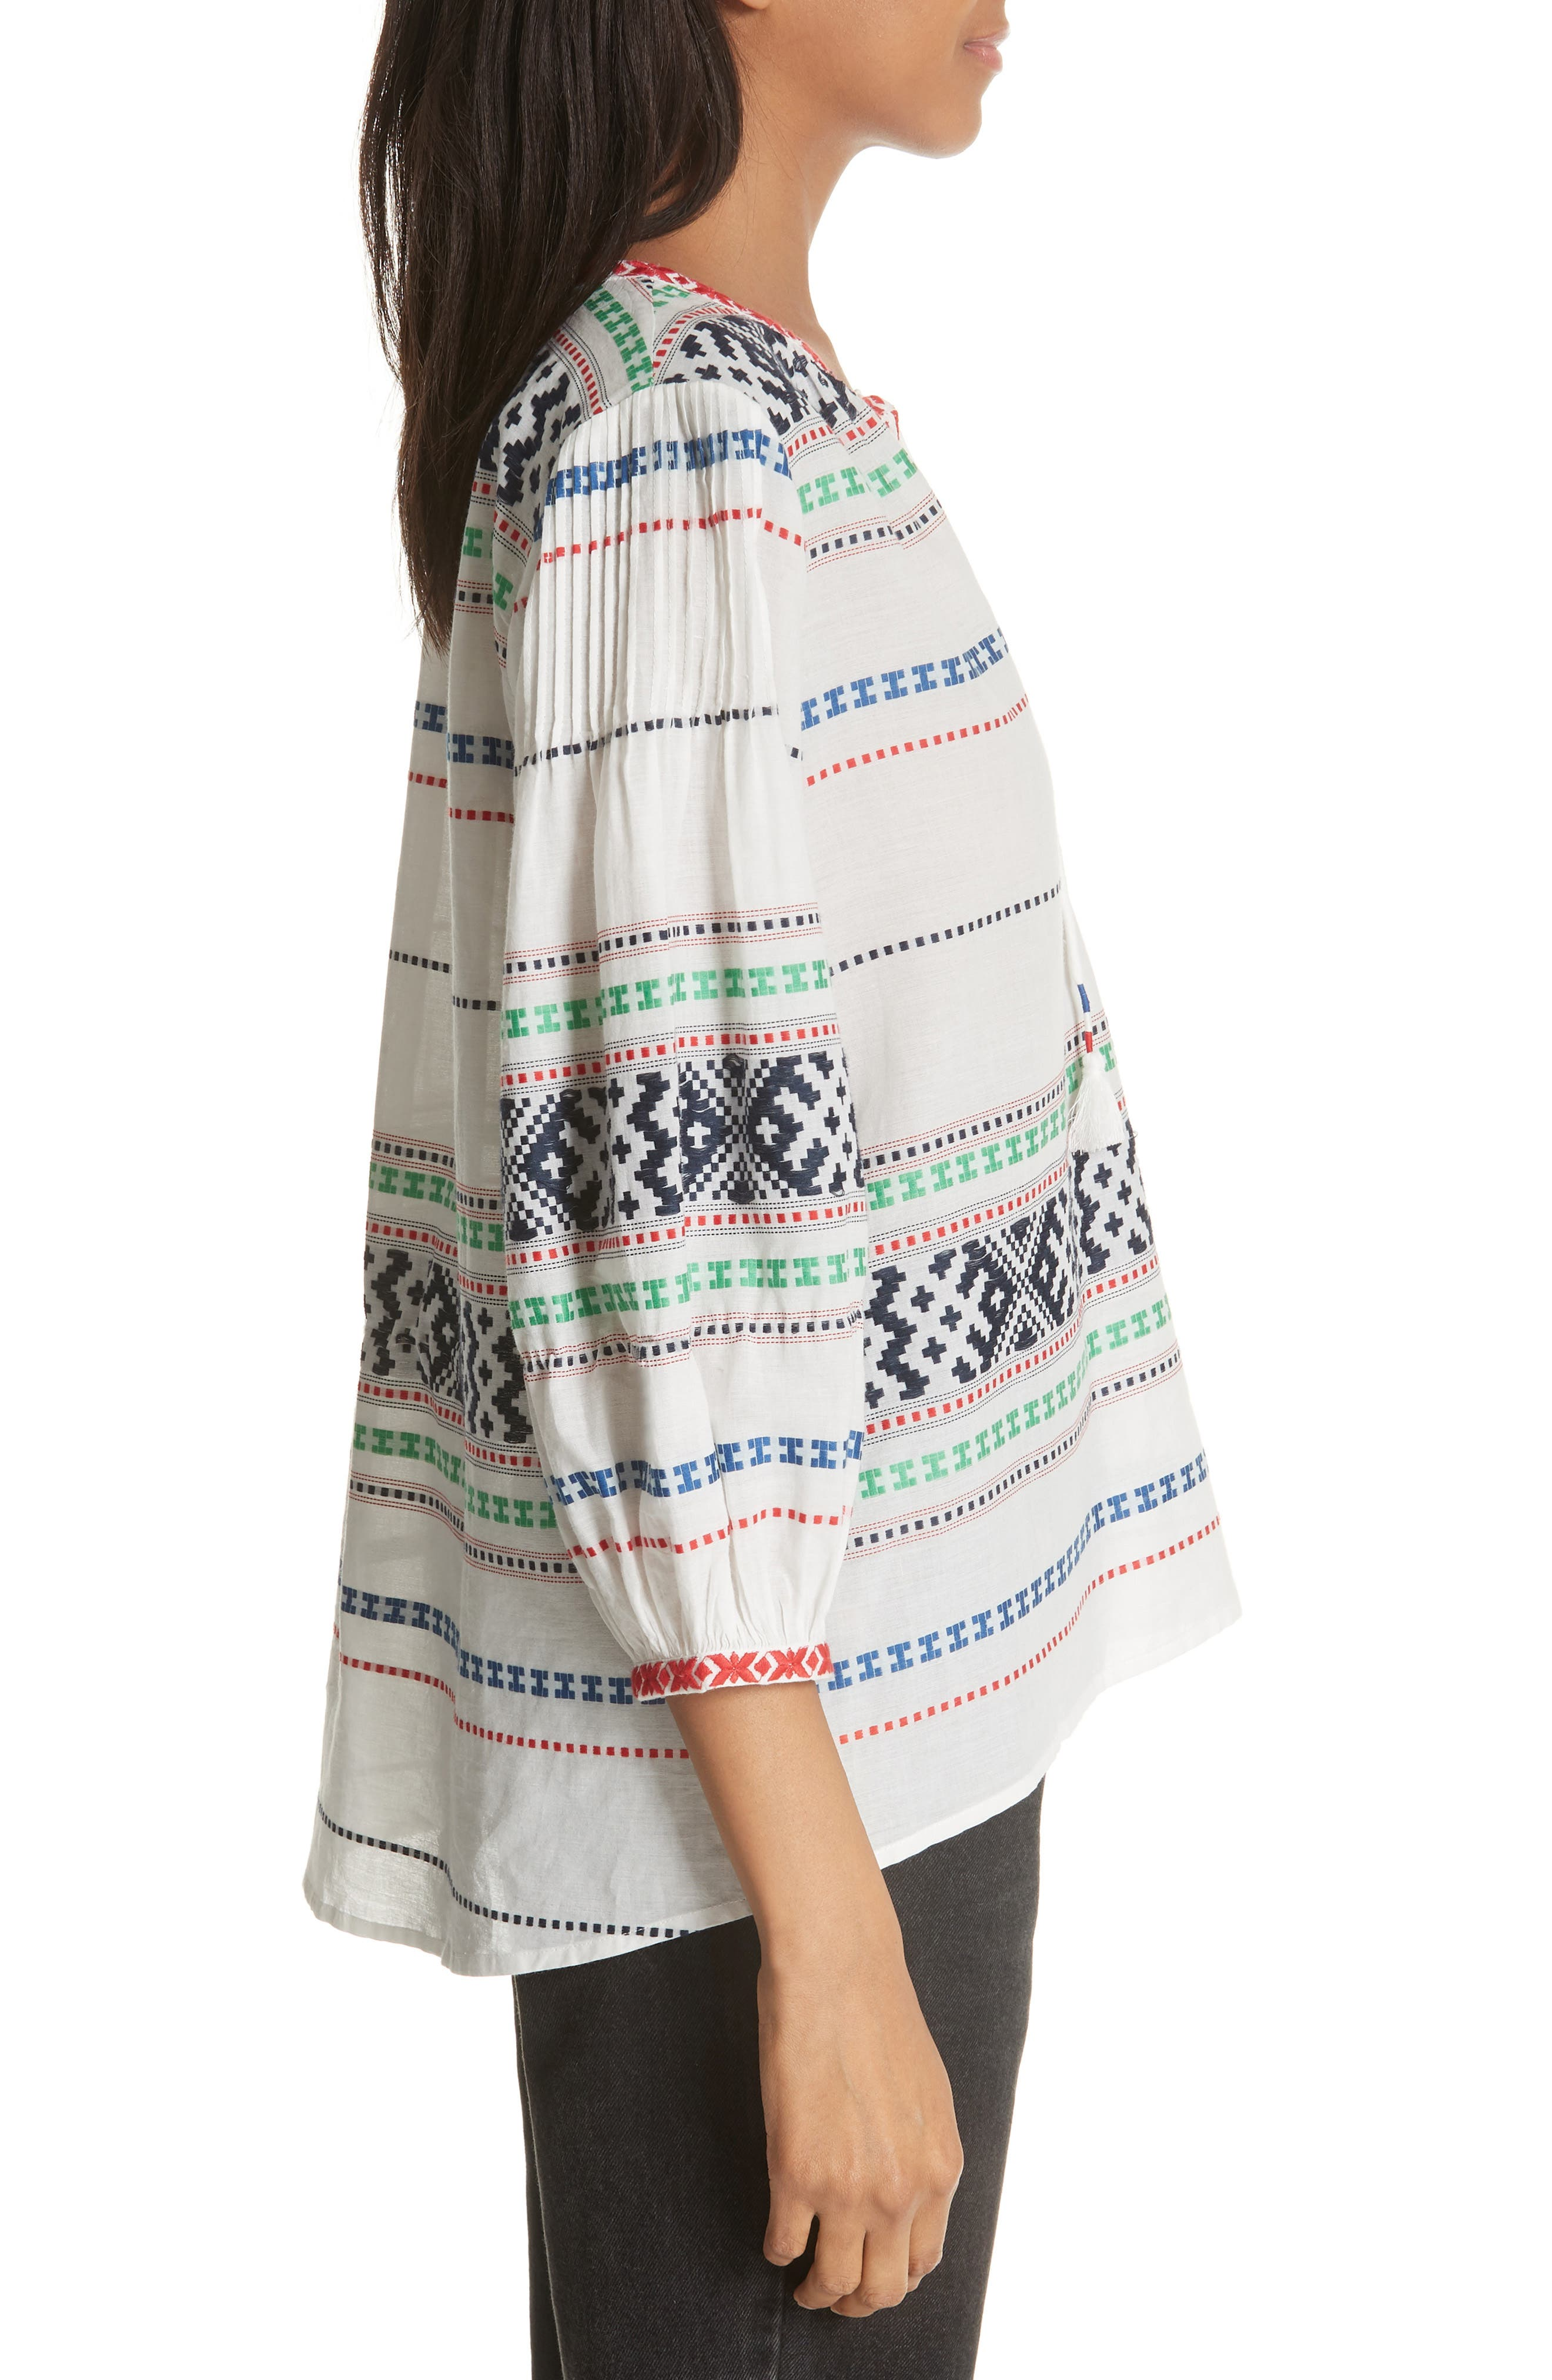 Jenollina Embroidered Top,                             Alternate thumbnail 3, color,                             114